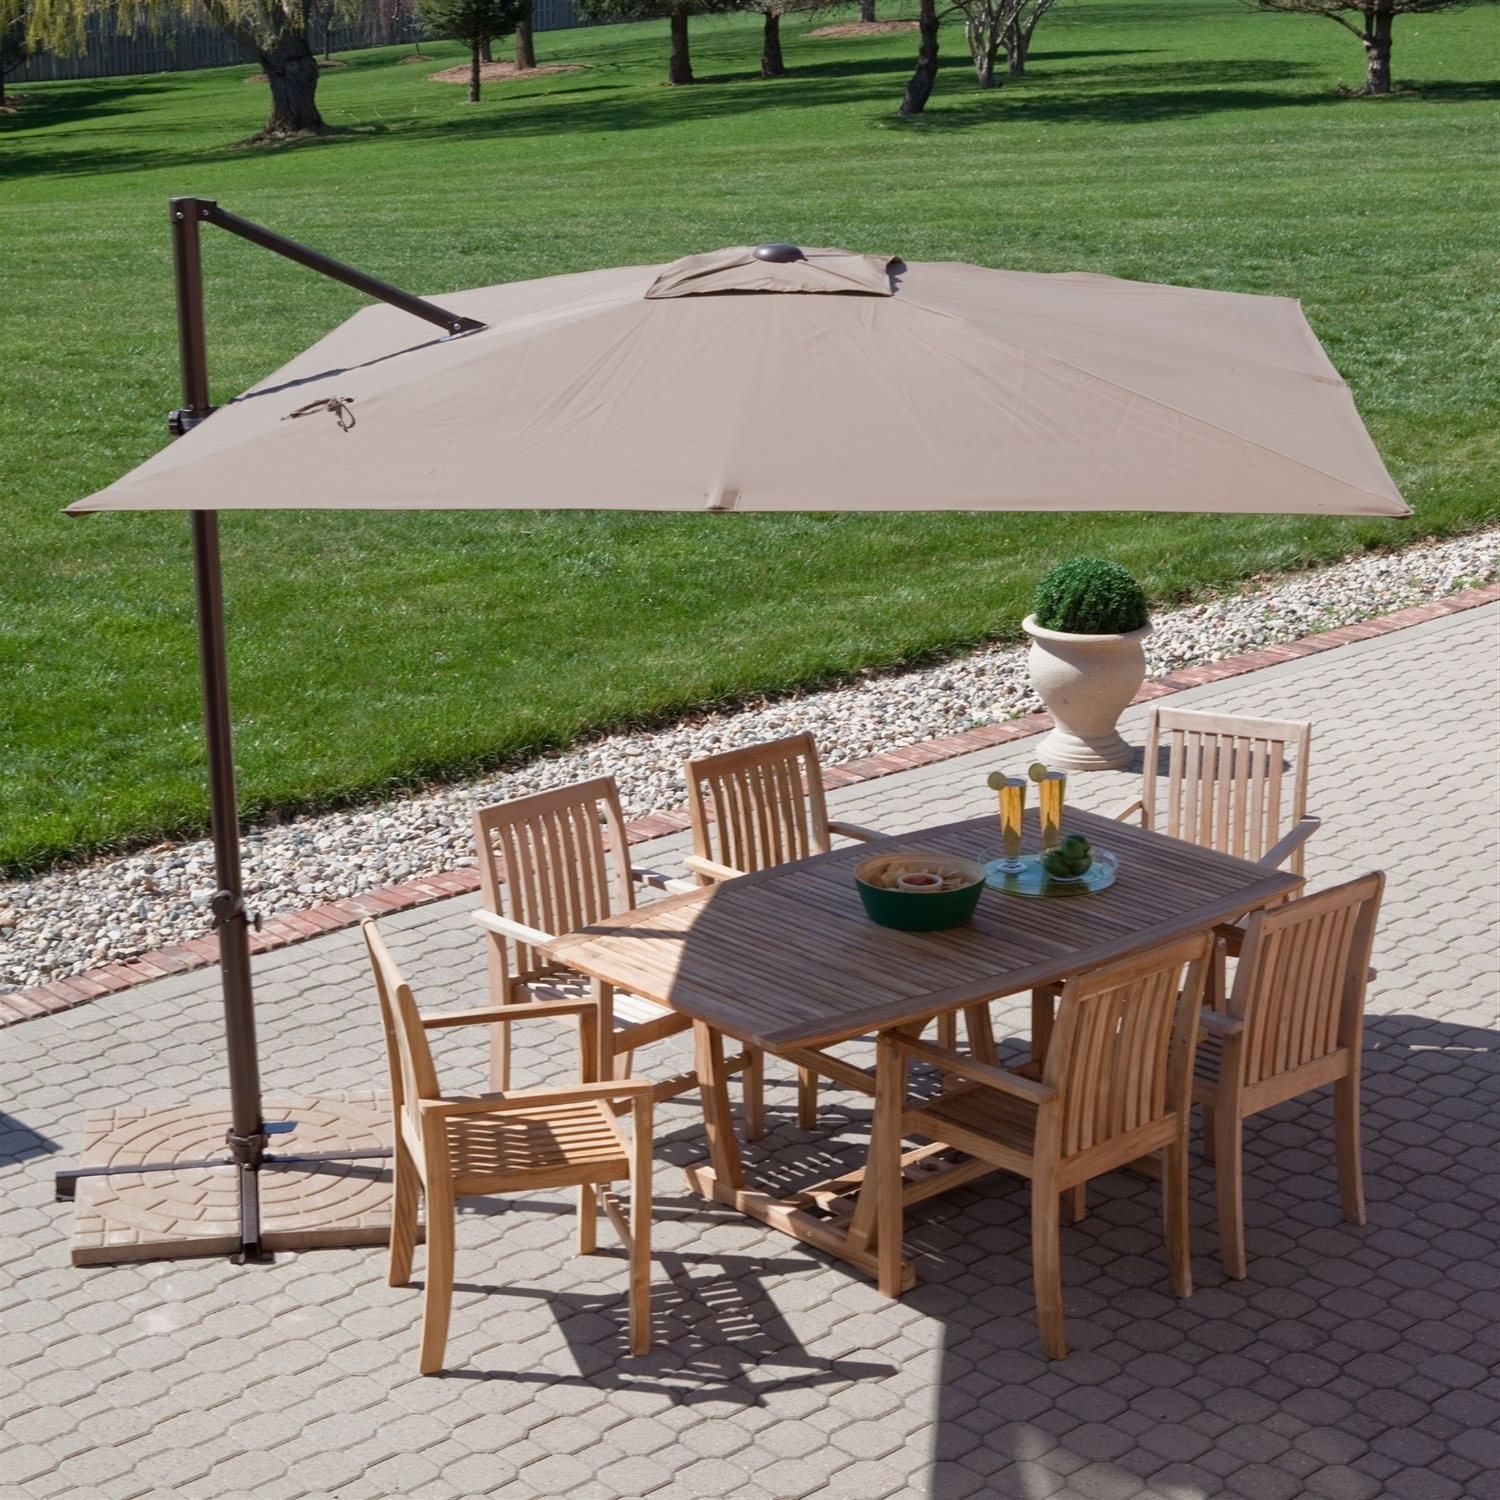 Current Modern 8.5 Ft Offset Cantilever Square Patio Umbrella With Mocha Intended For Cantilever Patio Umbrellas (Gallery 4 of 20)